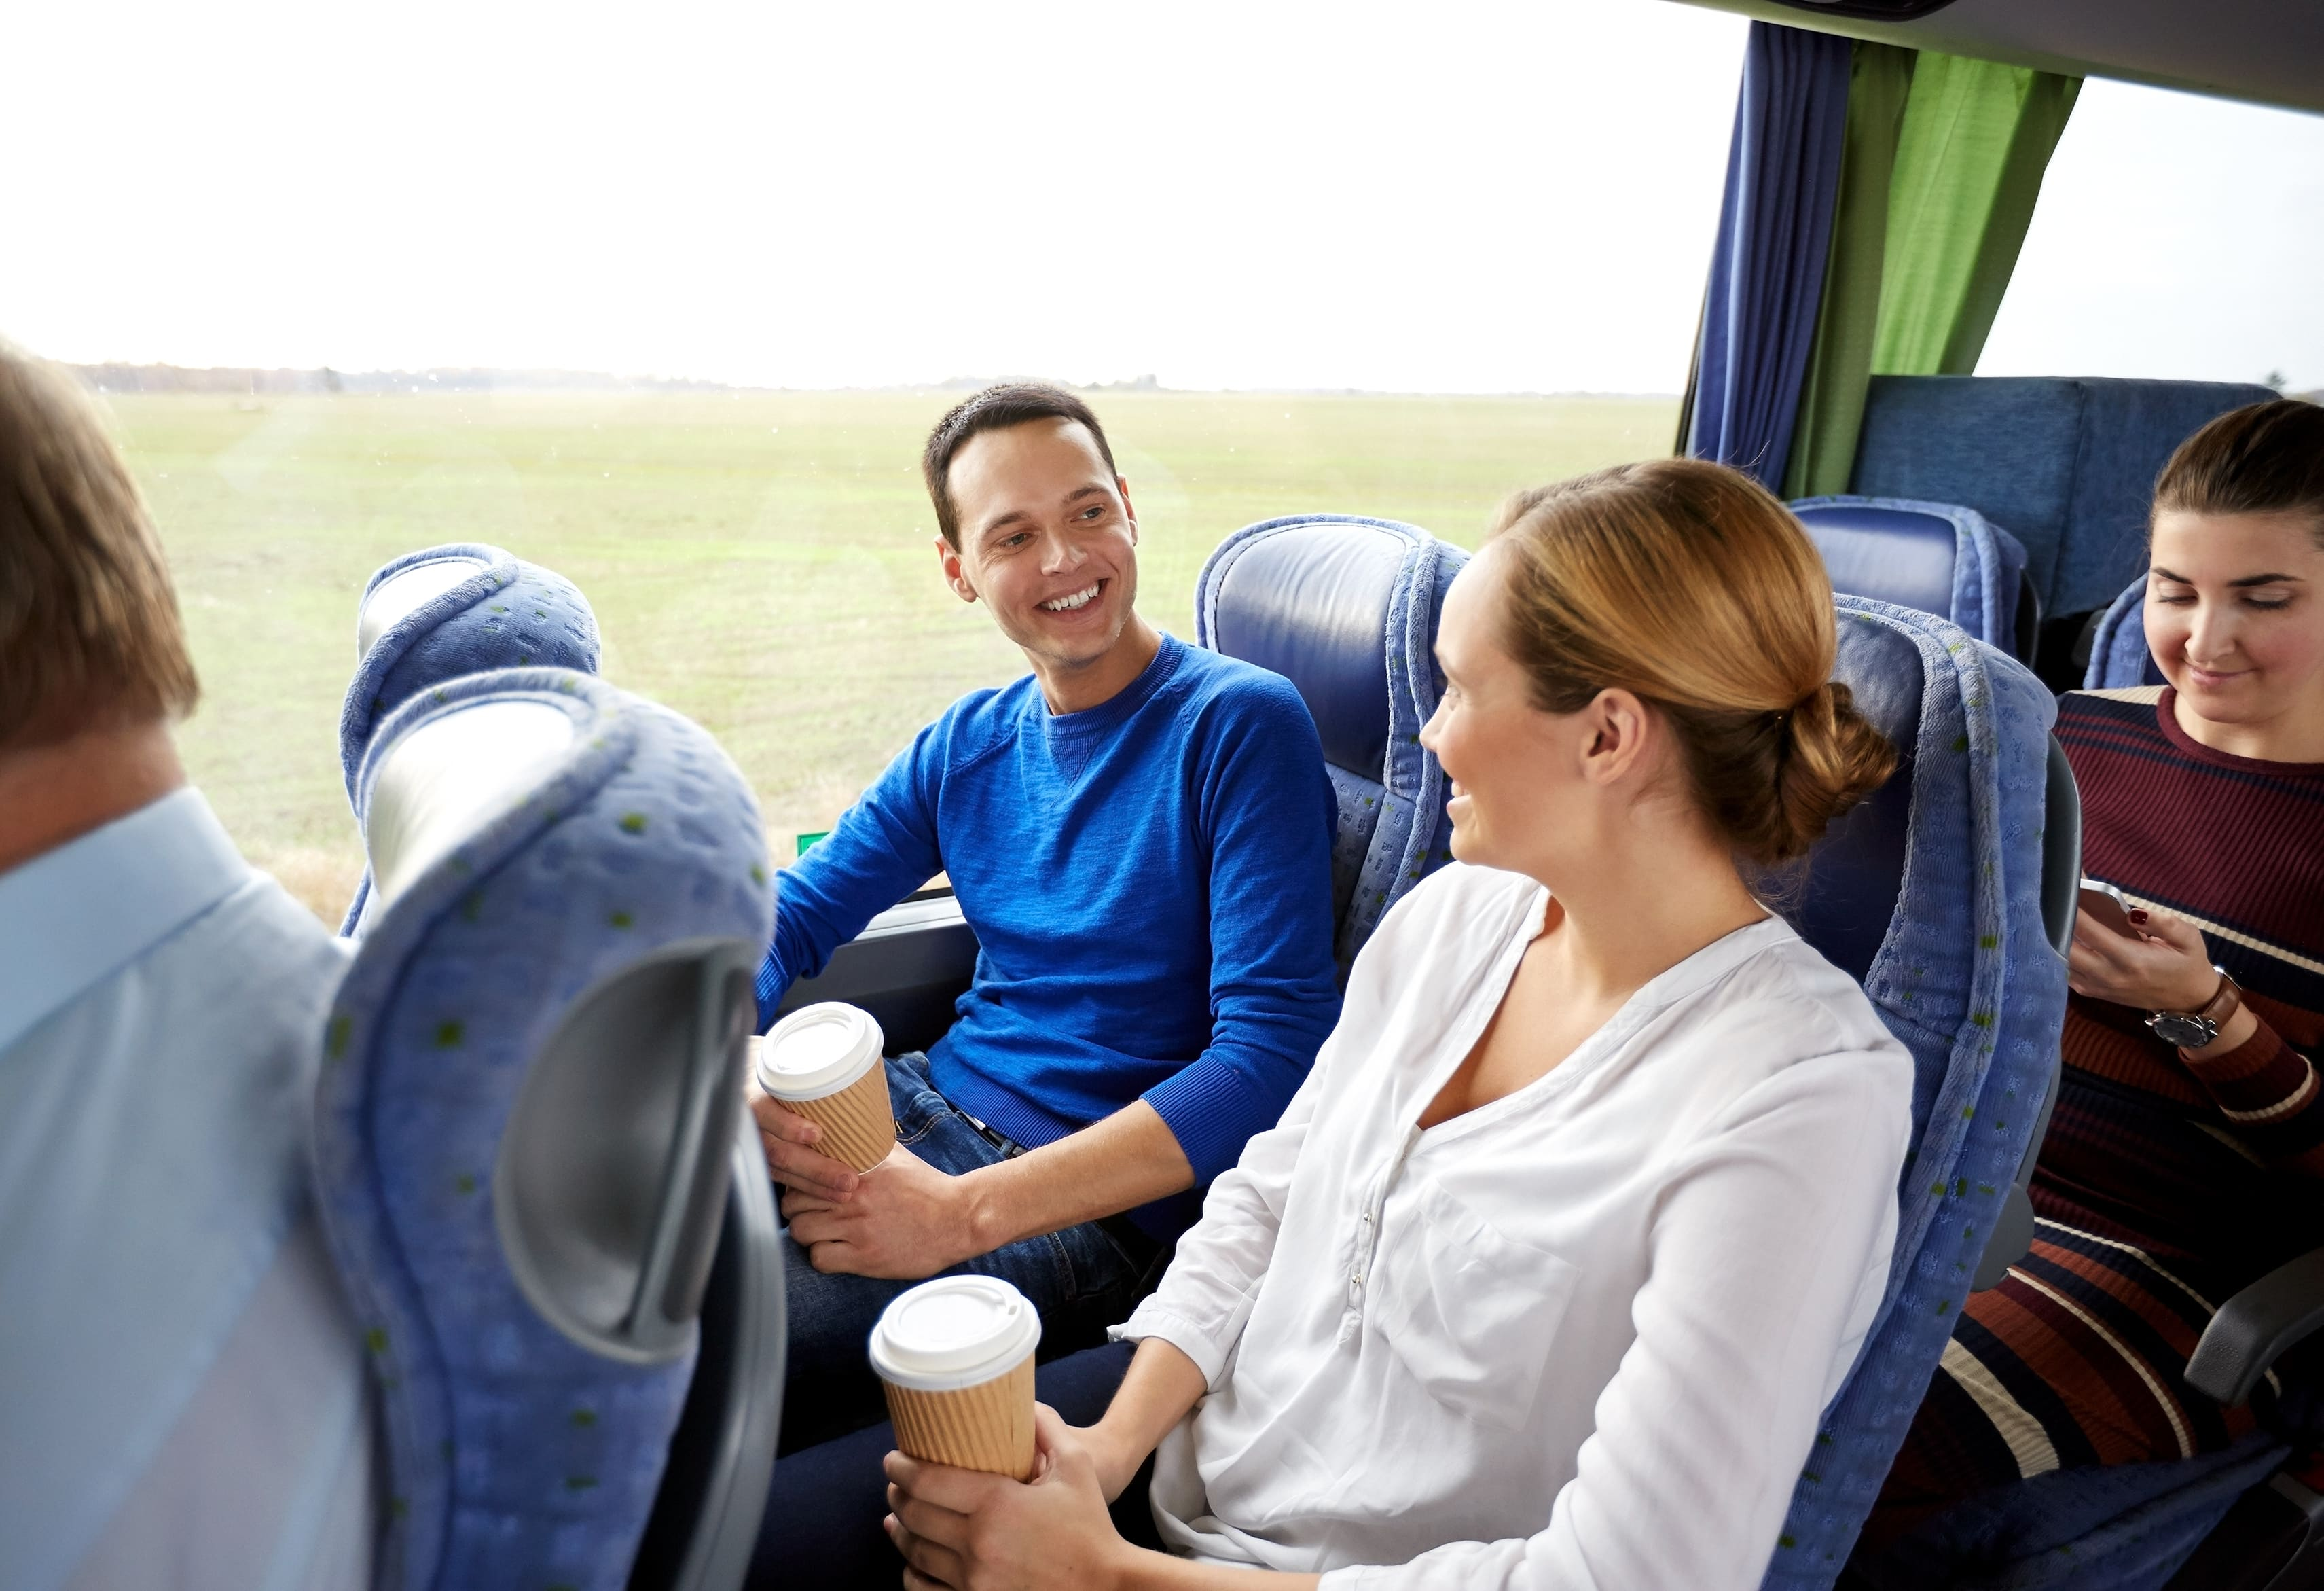 happy people in a safely-operated coach bus